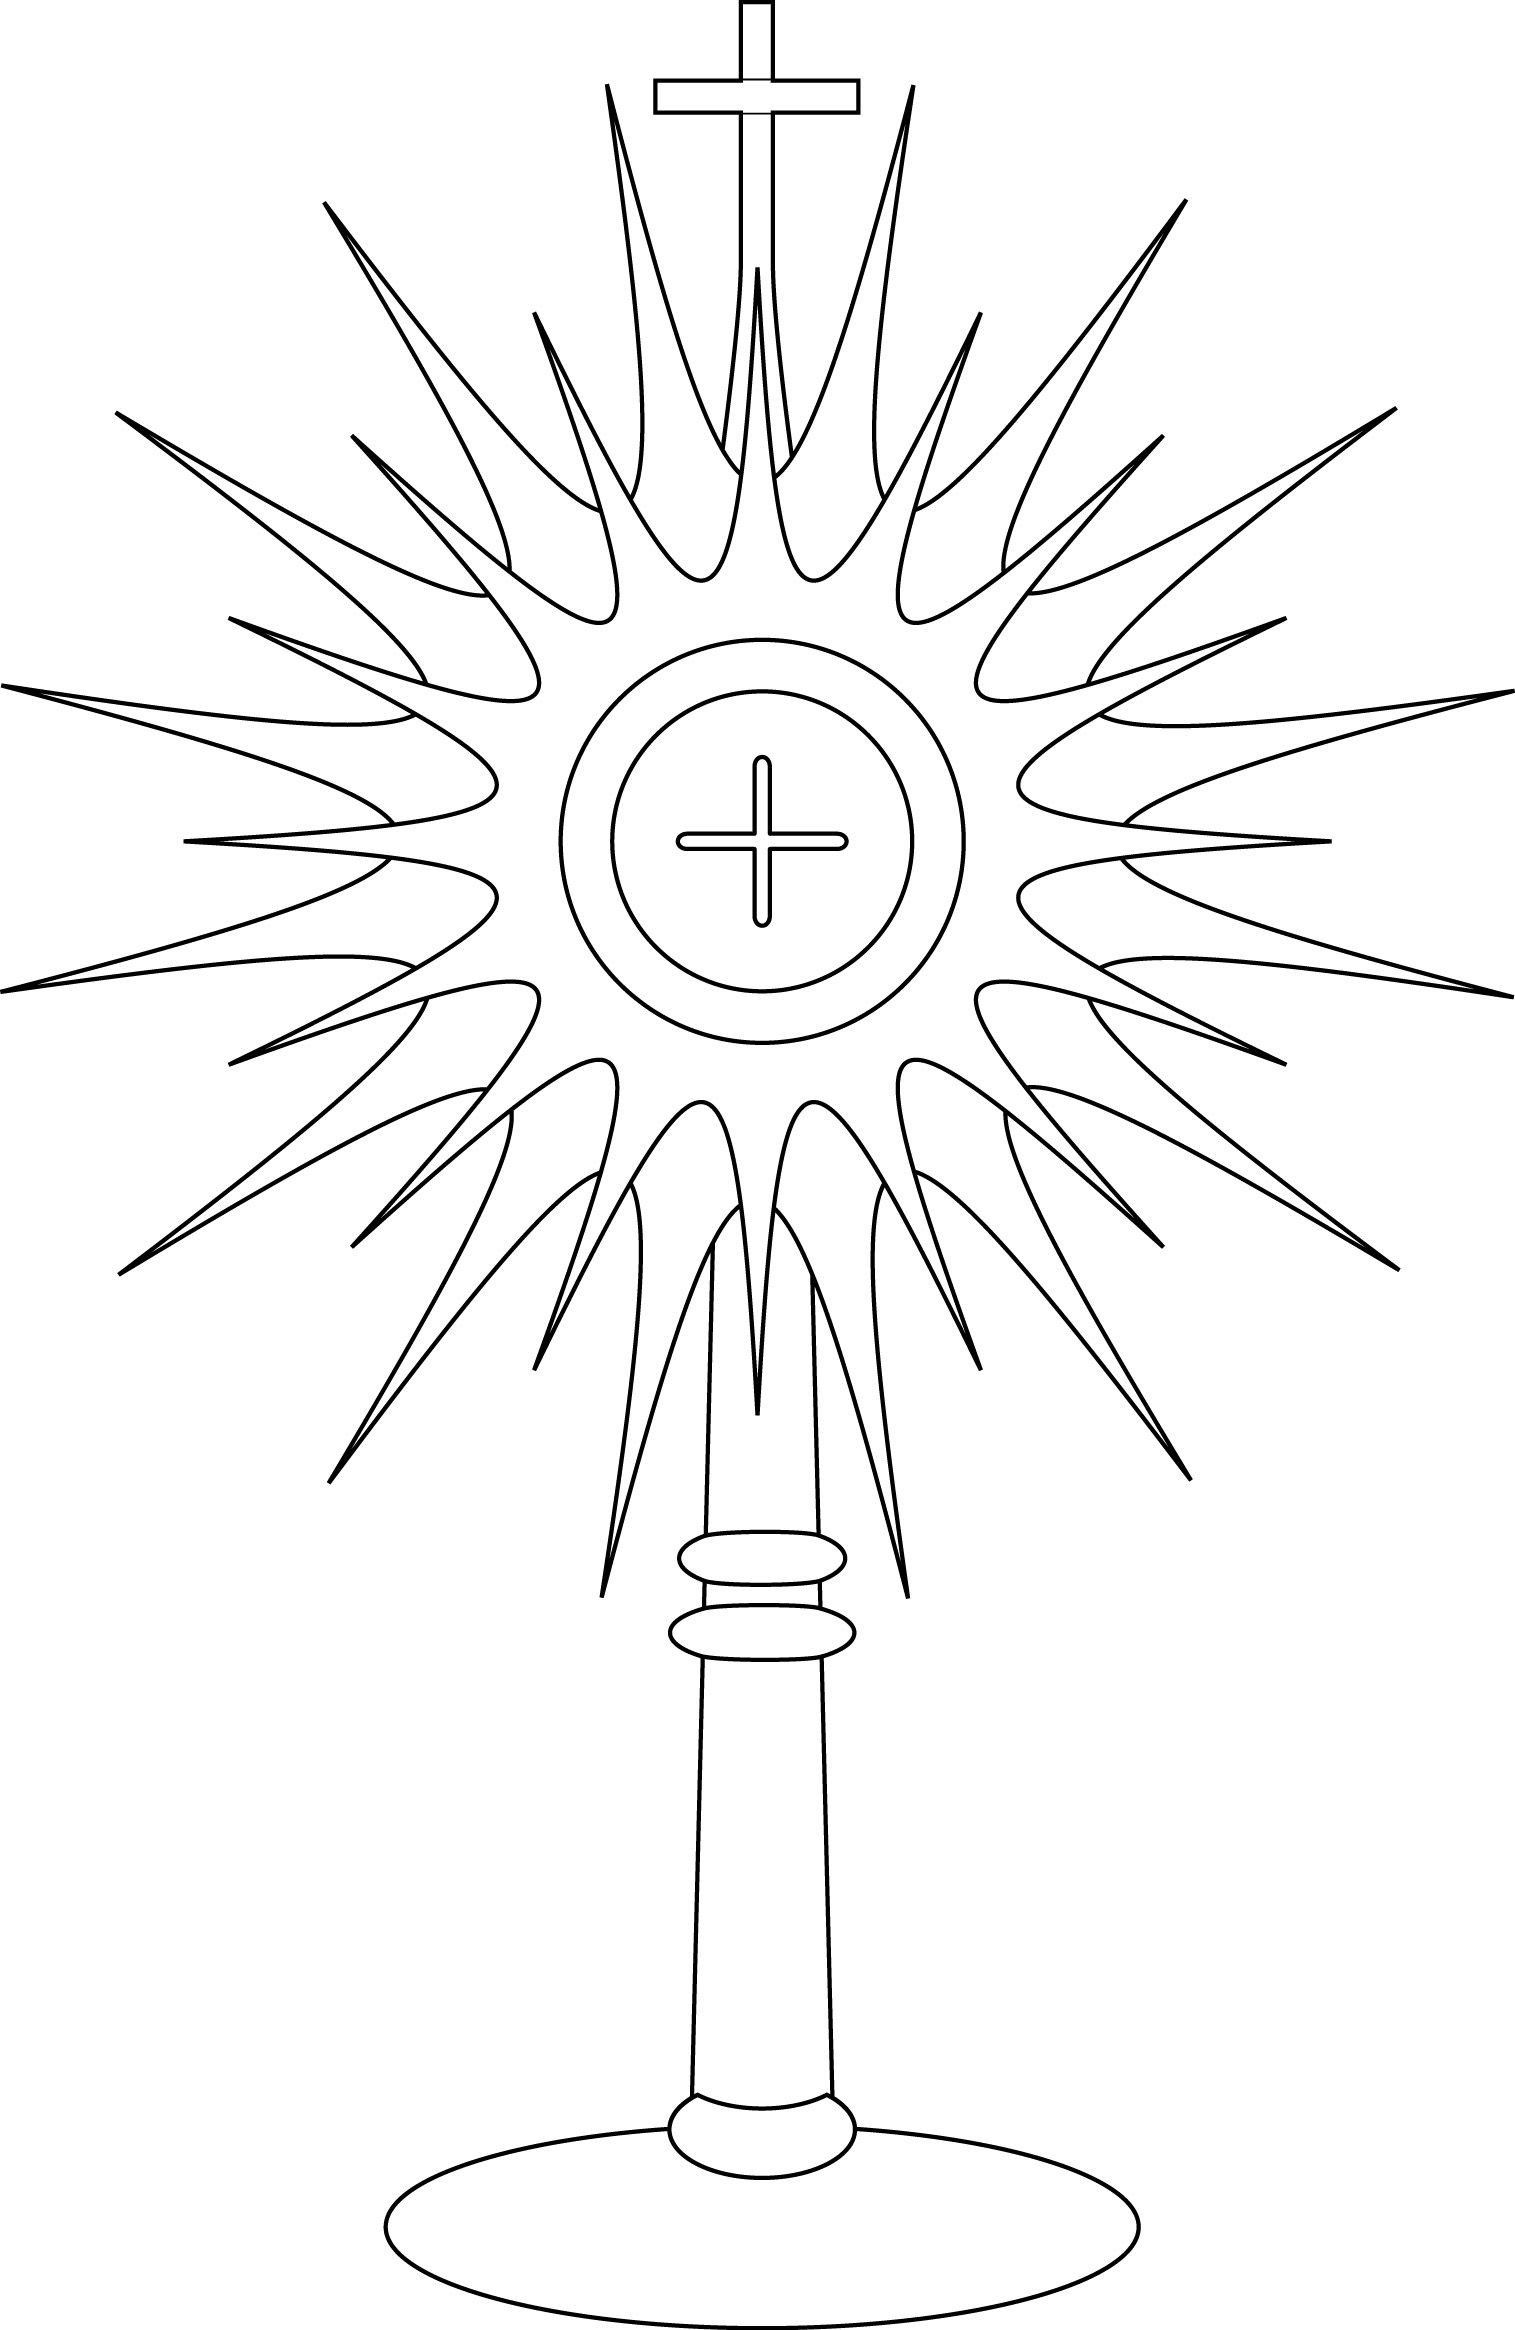 Jesus Ascension Coloring Page Awesome Monstrance Coloring